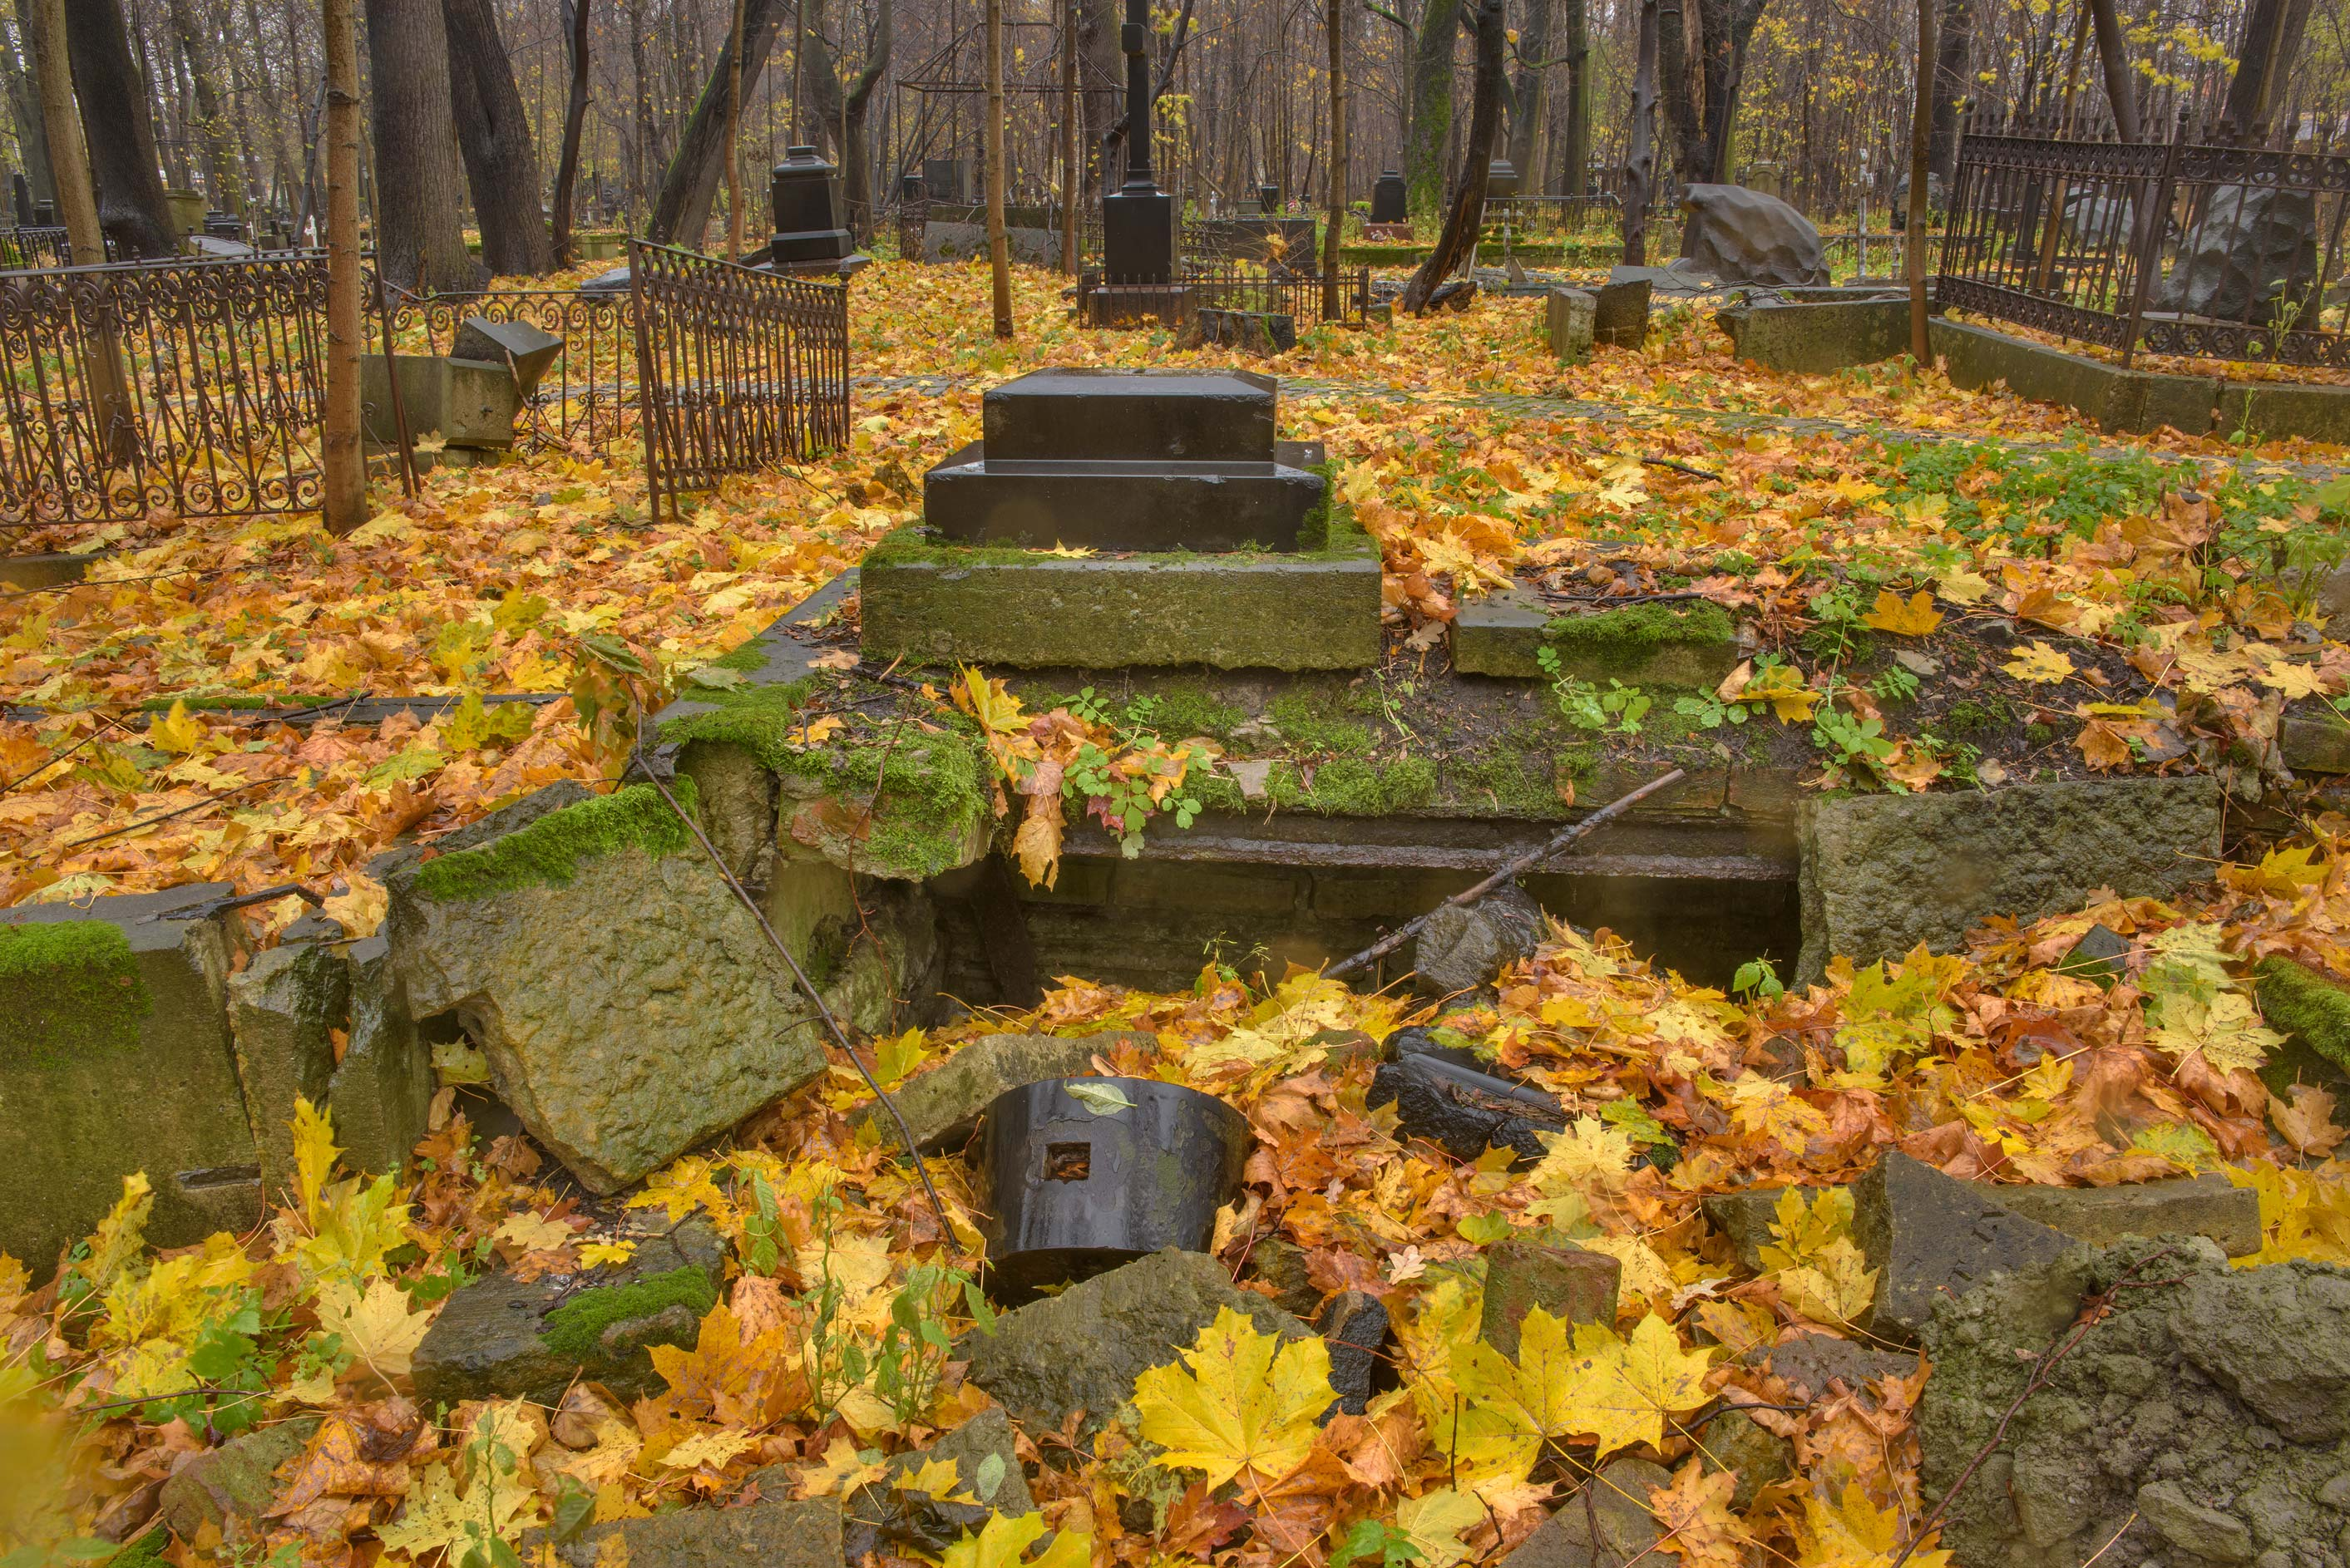 Tomb turned to rubble in Smolenskoe Lutheran...Island. St.Petersburg, Russia